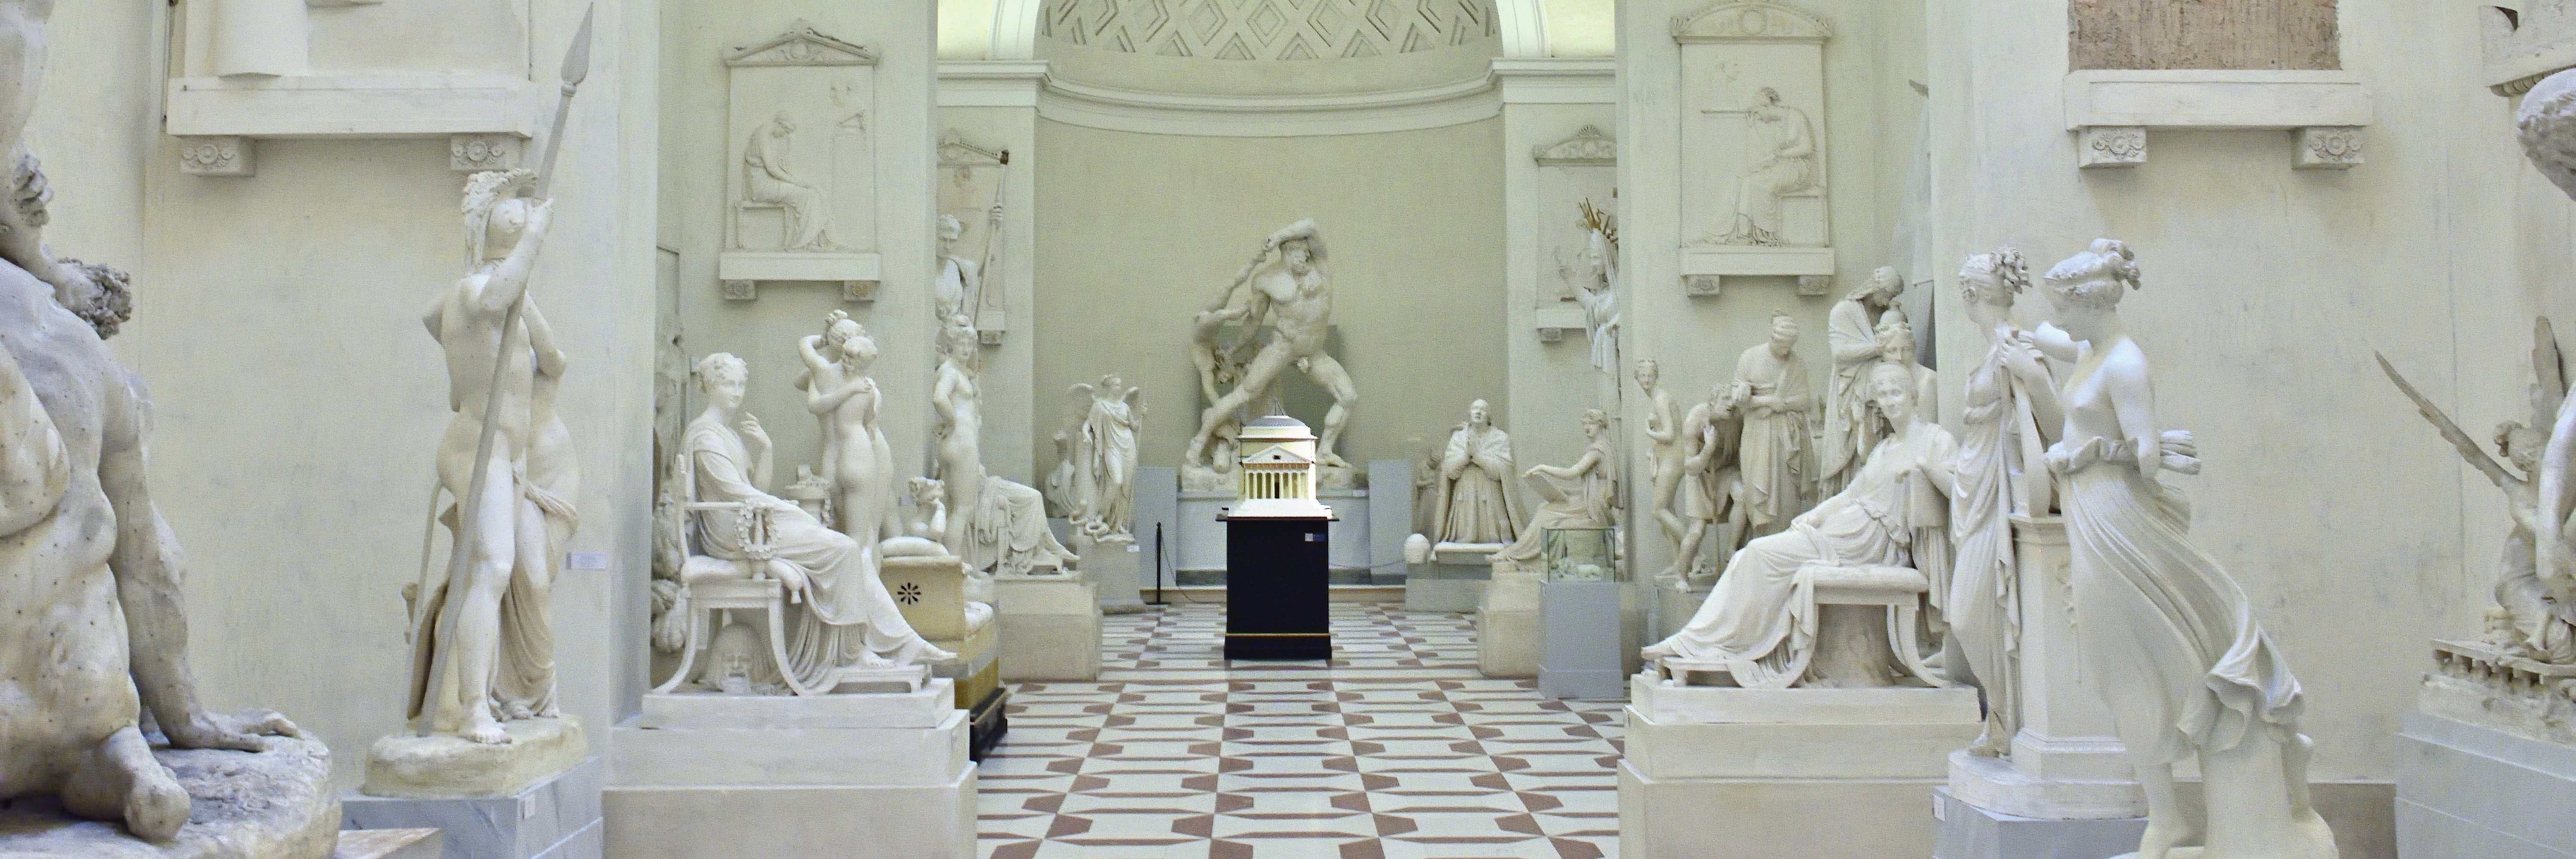 sculptures in Museum Gipsoteca Antonio Canova, Via Canova, Possagno, Province of Treviso, Italy